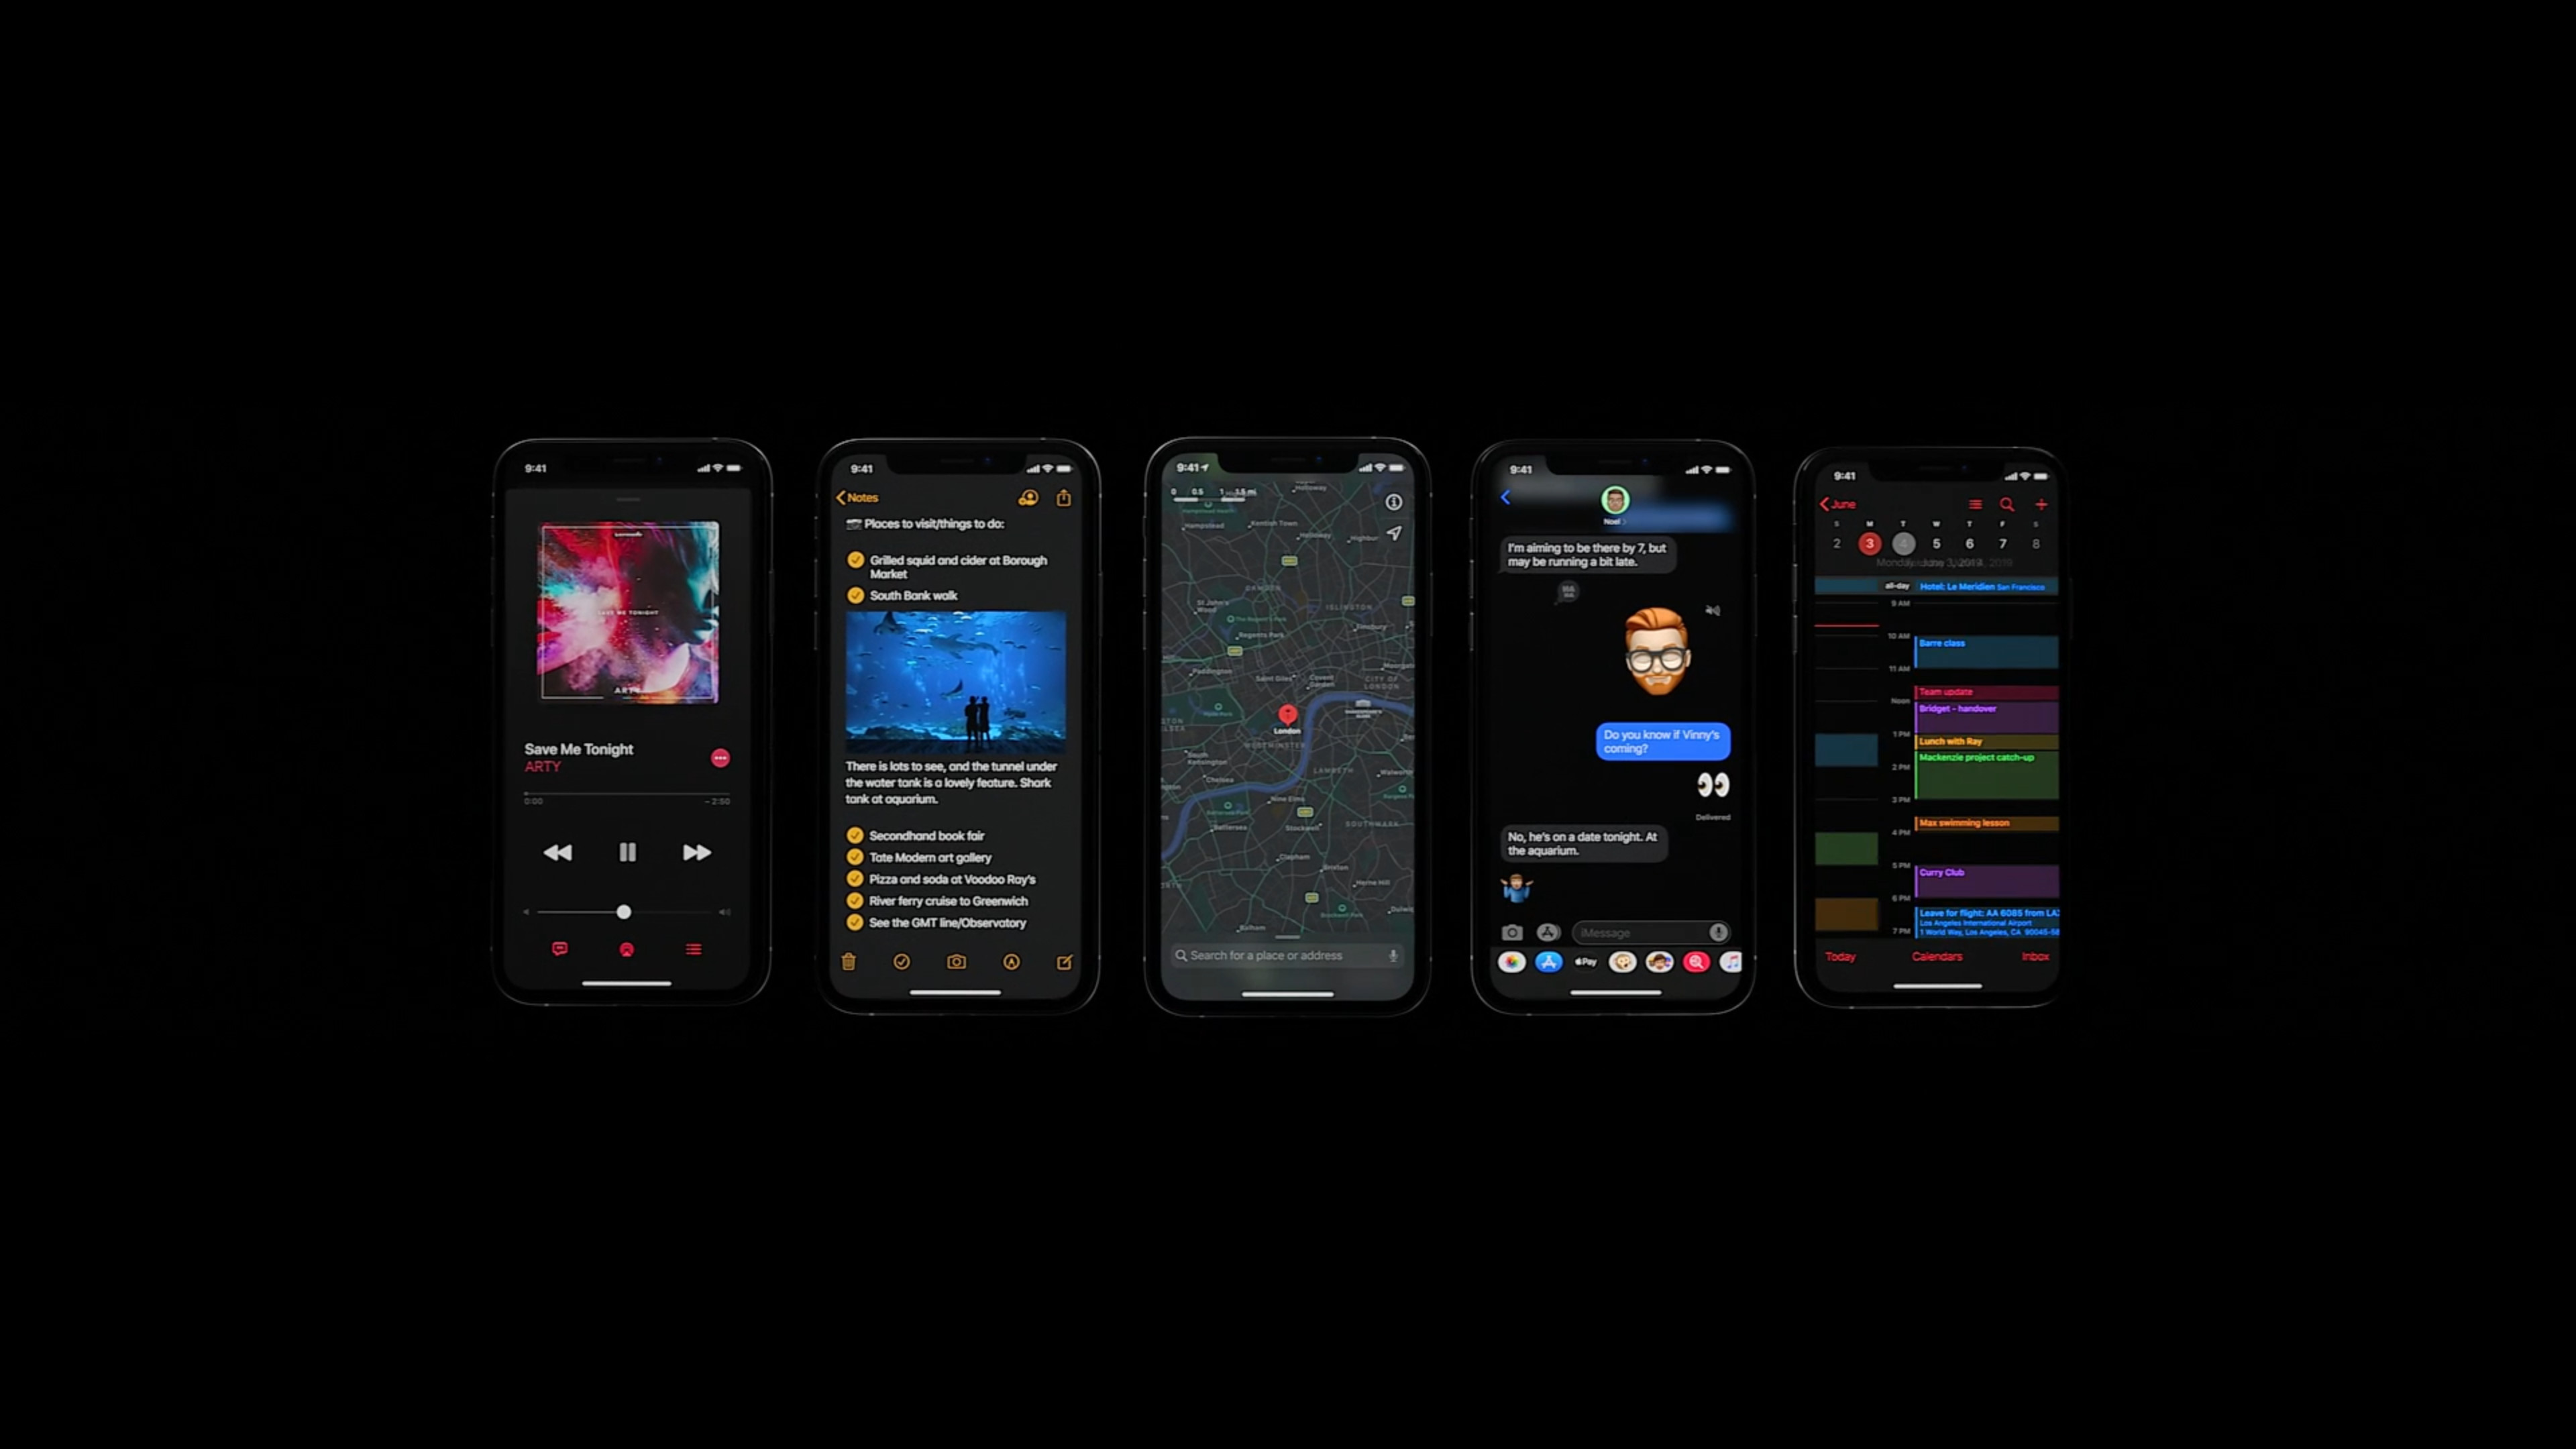 Apple Announces Ios 13 With Dark Mode New Privacy Features And